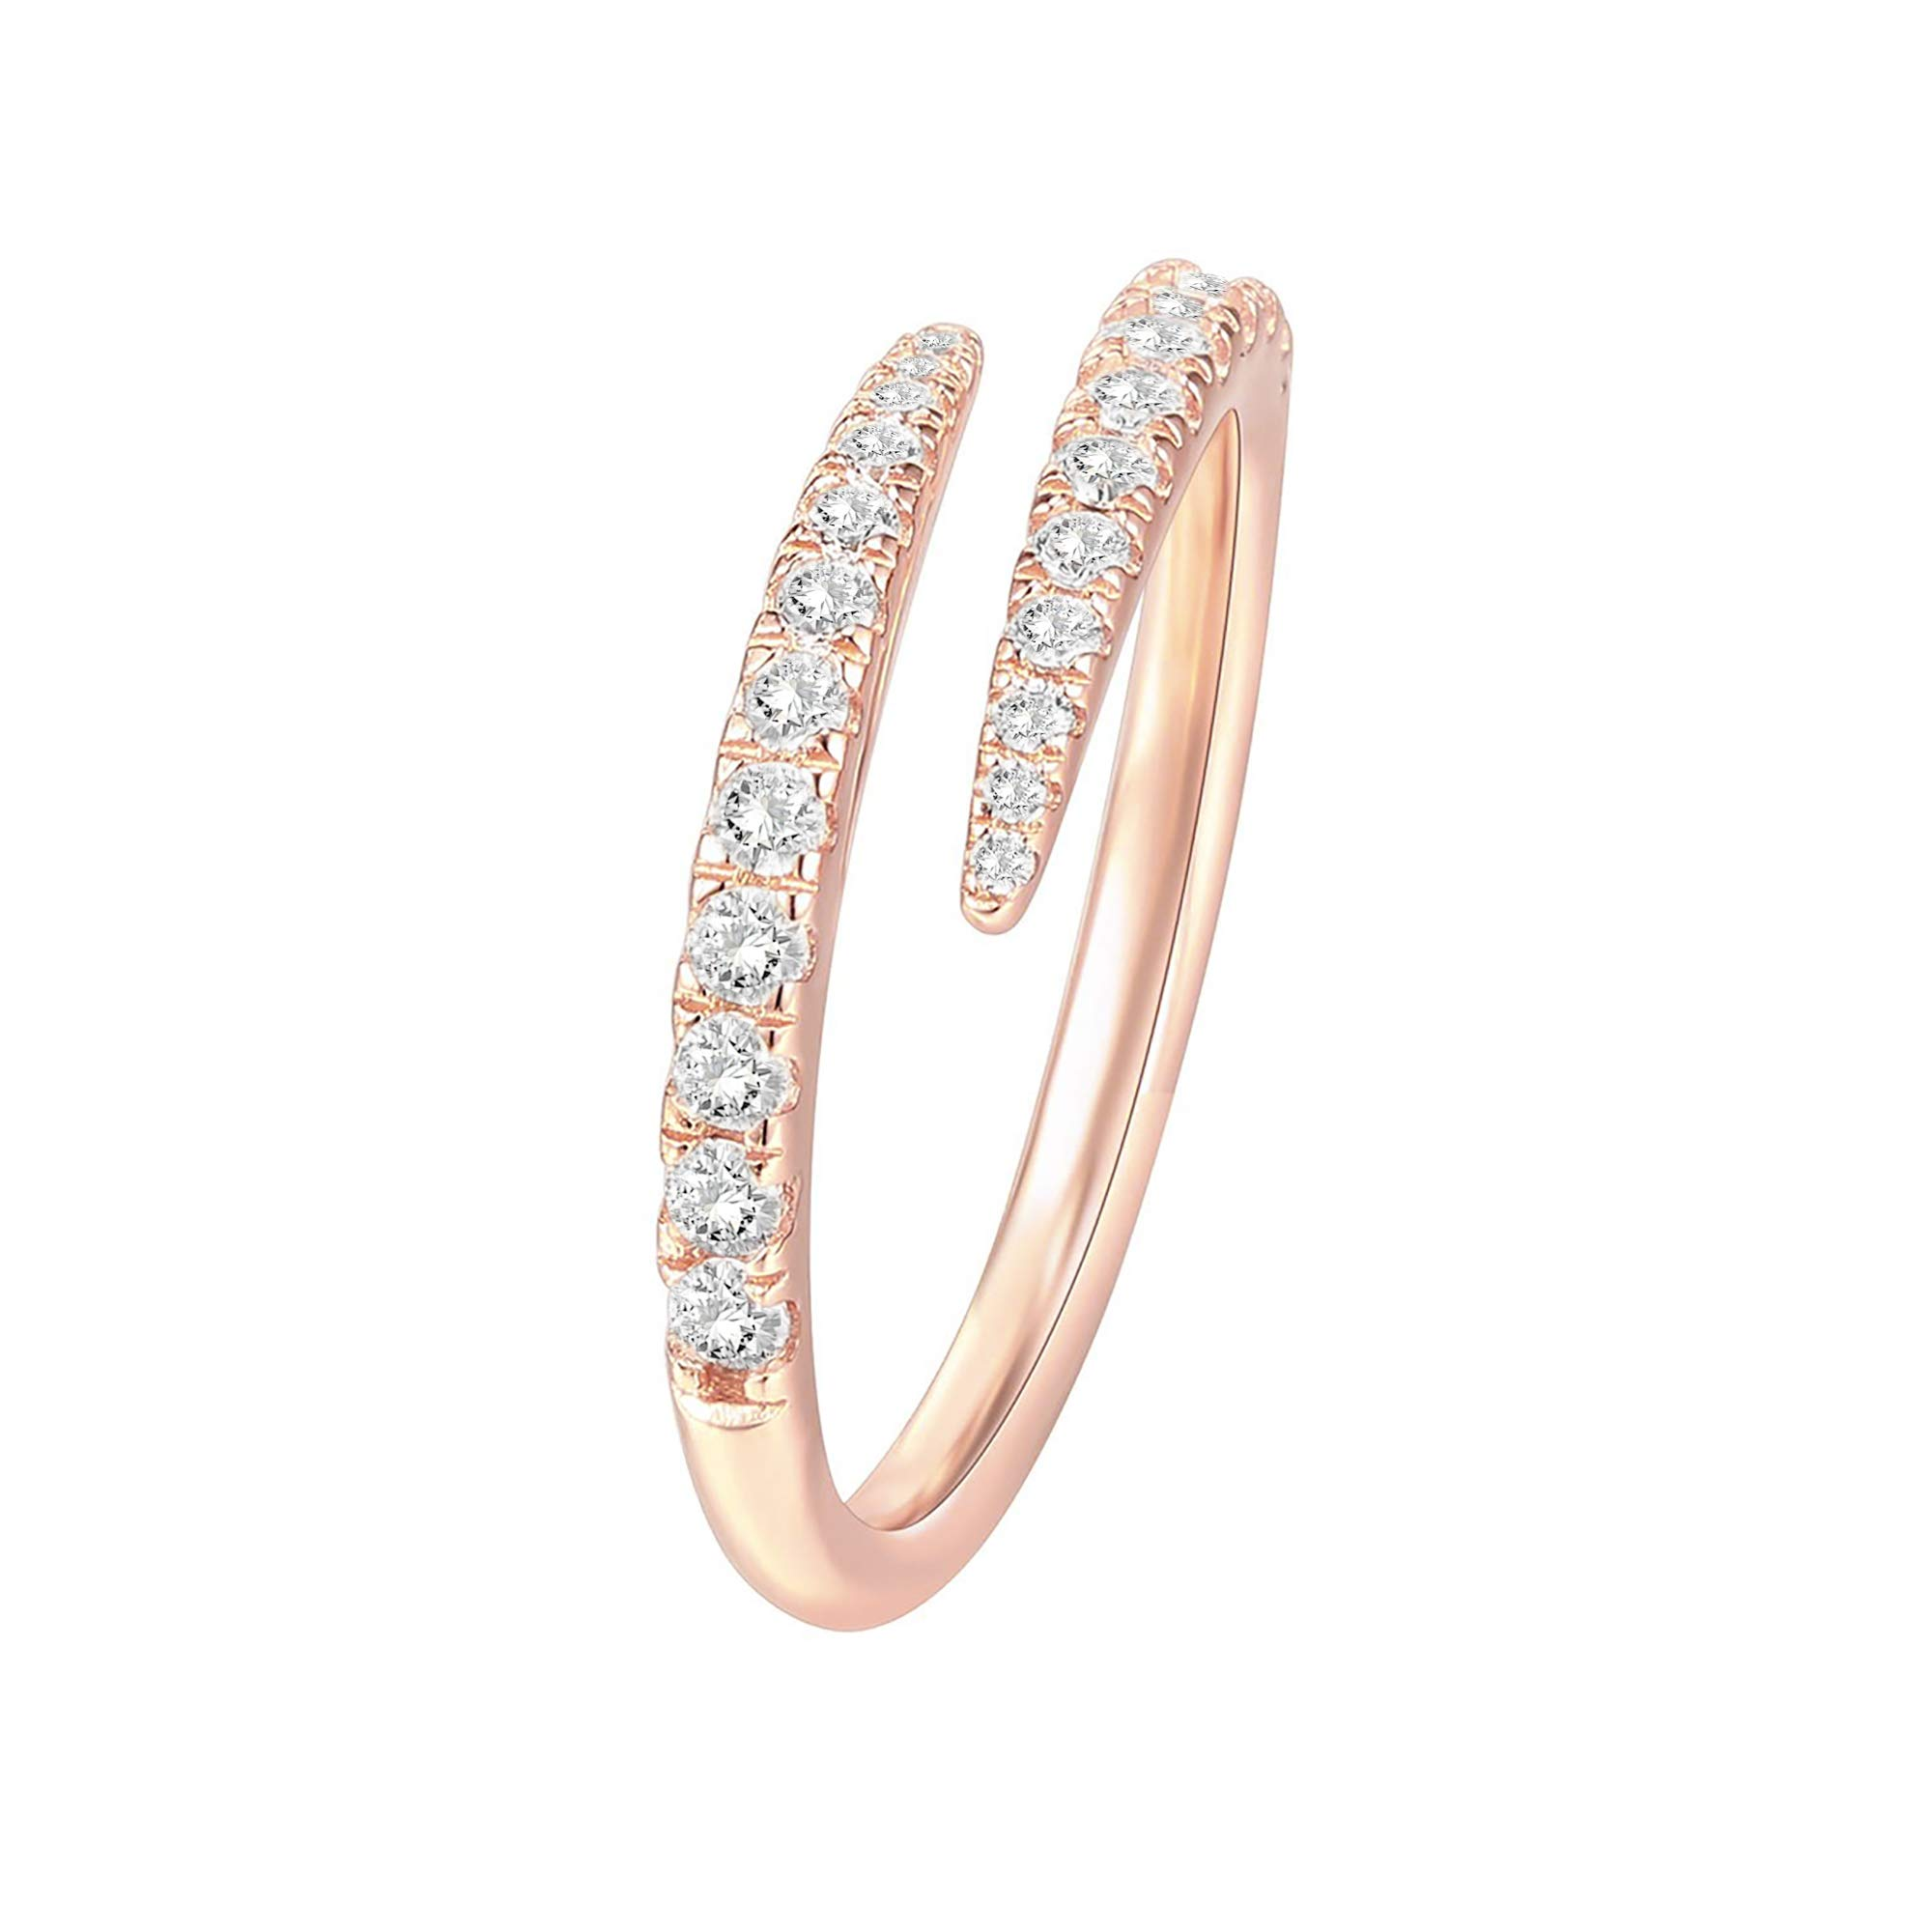 PAVOI 14K Gold Plated Sterling Silver Cubic Zirconia Open Twist Eternity Band for Women